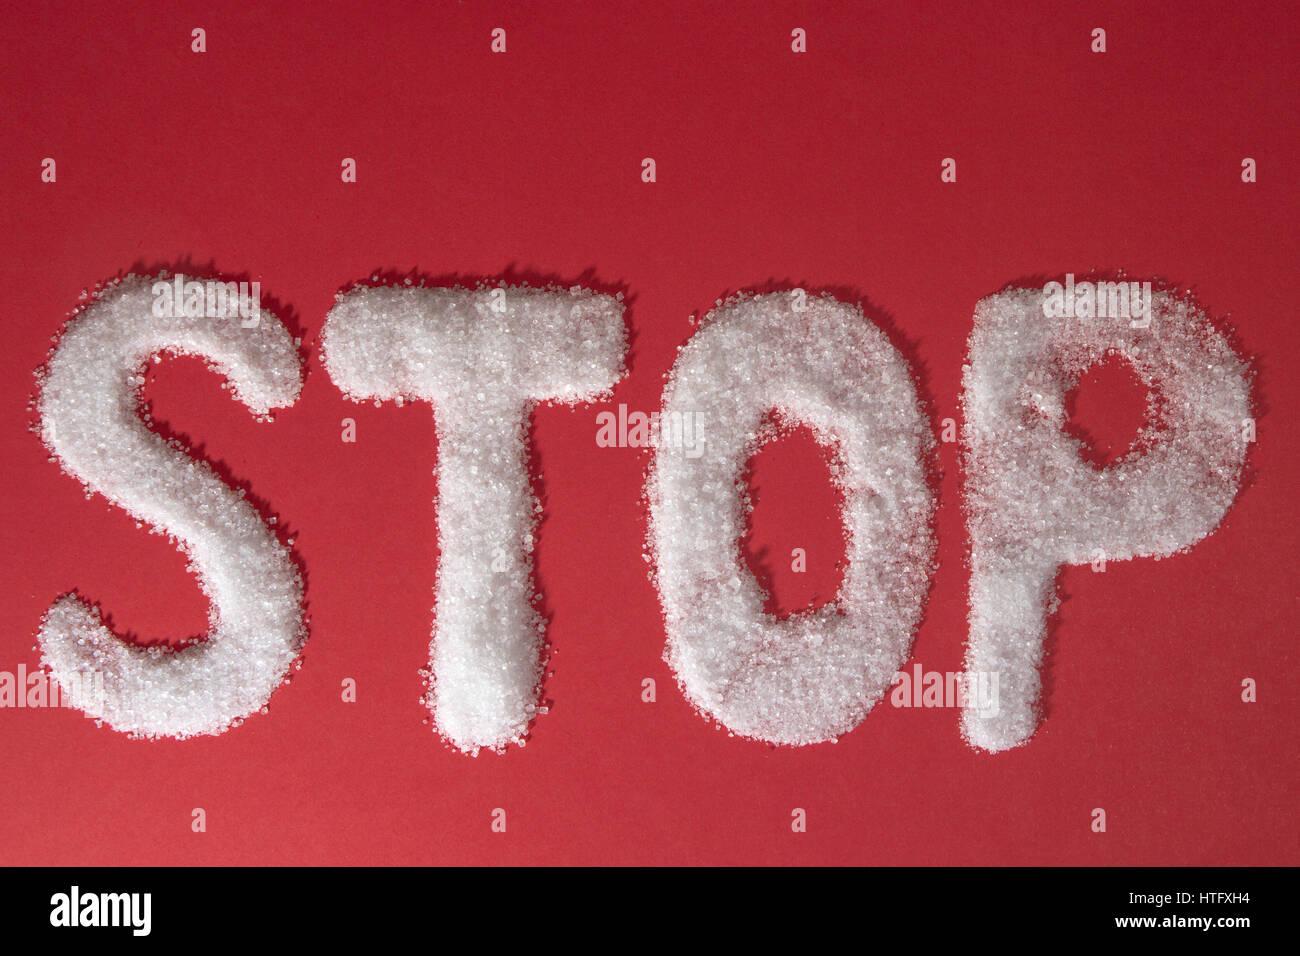 The word STOP written by sugar grains on red background. Top view - Stock Image